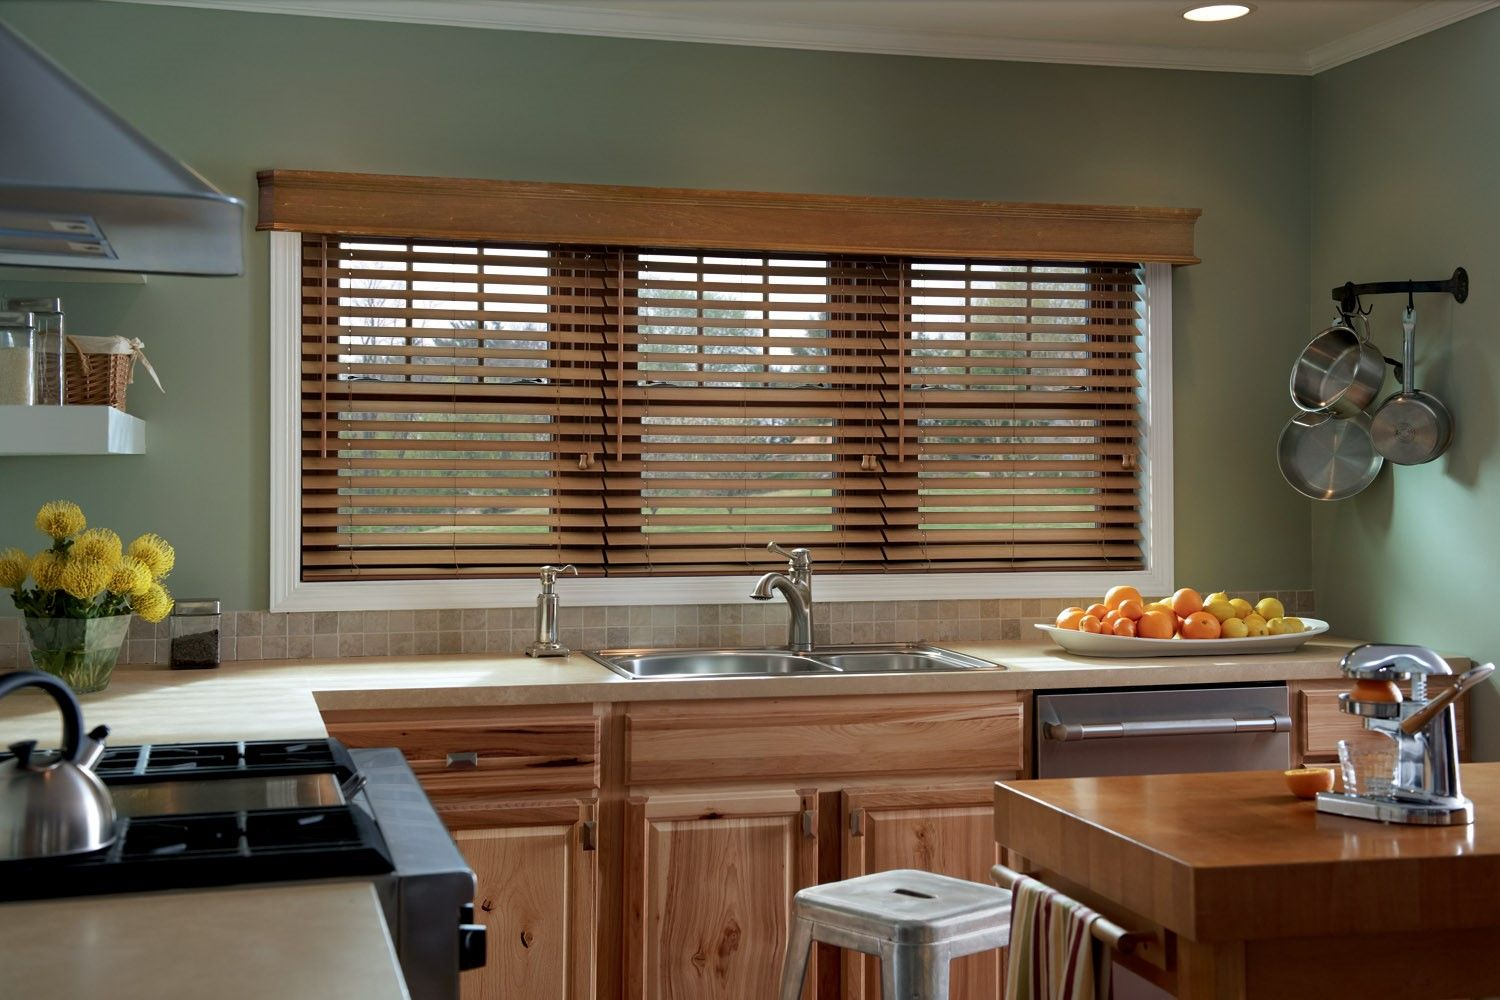 Chasing Dream Houses Kitchen Inspirations Kitchen Remodel Small